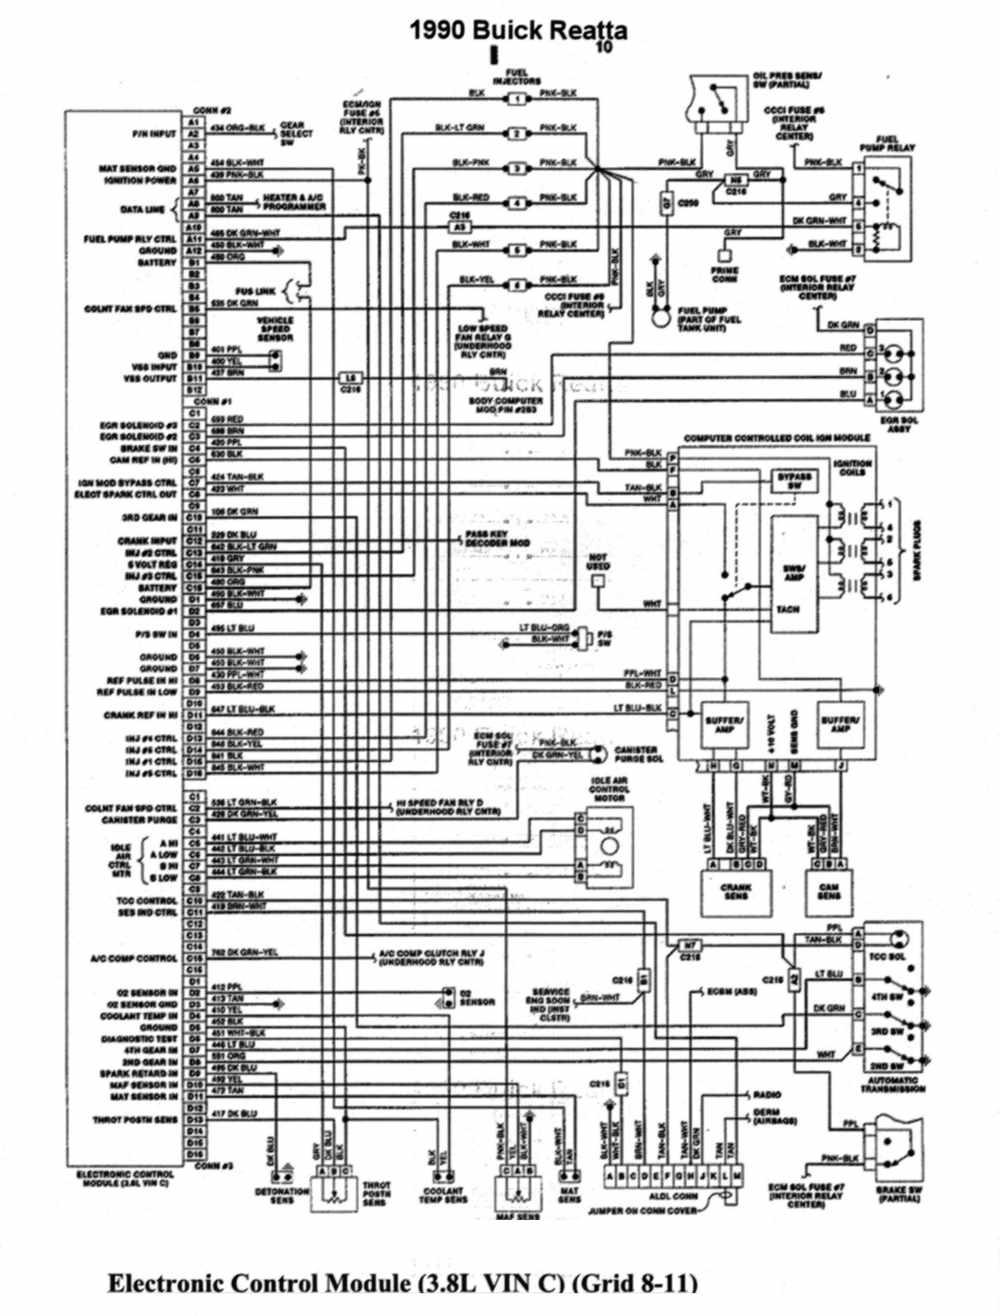 1969 buick riviera wiring diagram free picture wiring diagram wire rh bsmdot co